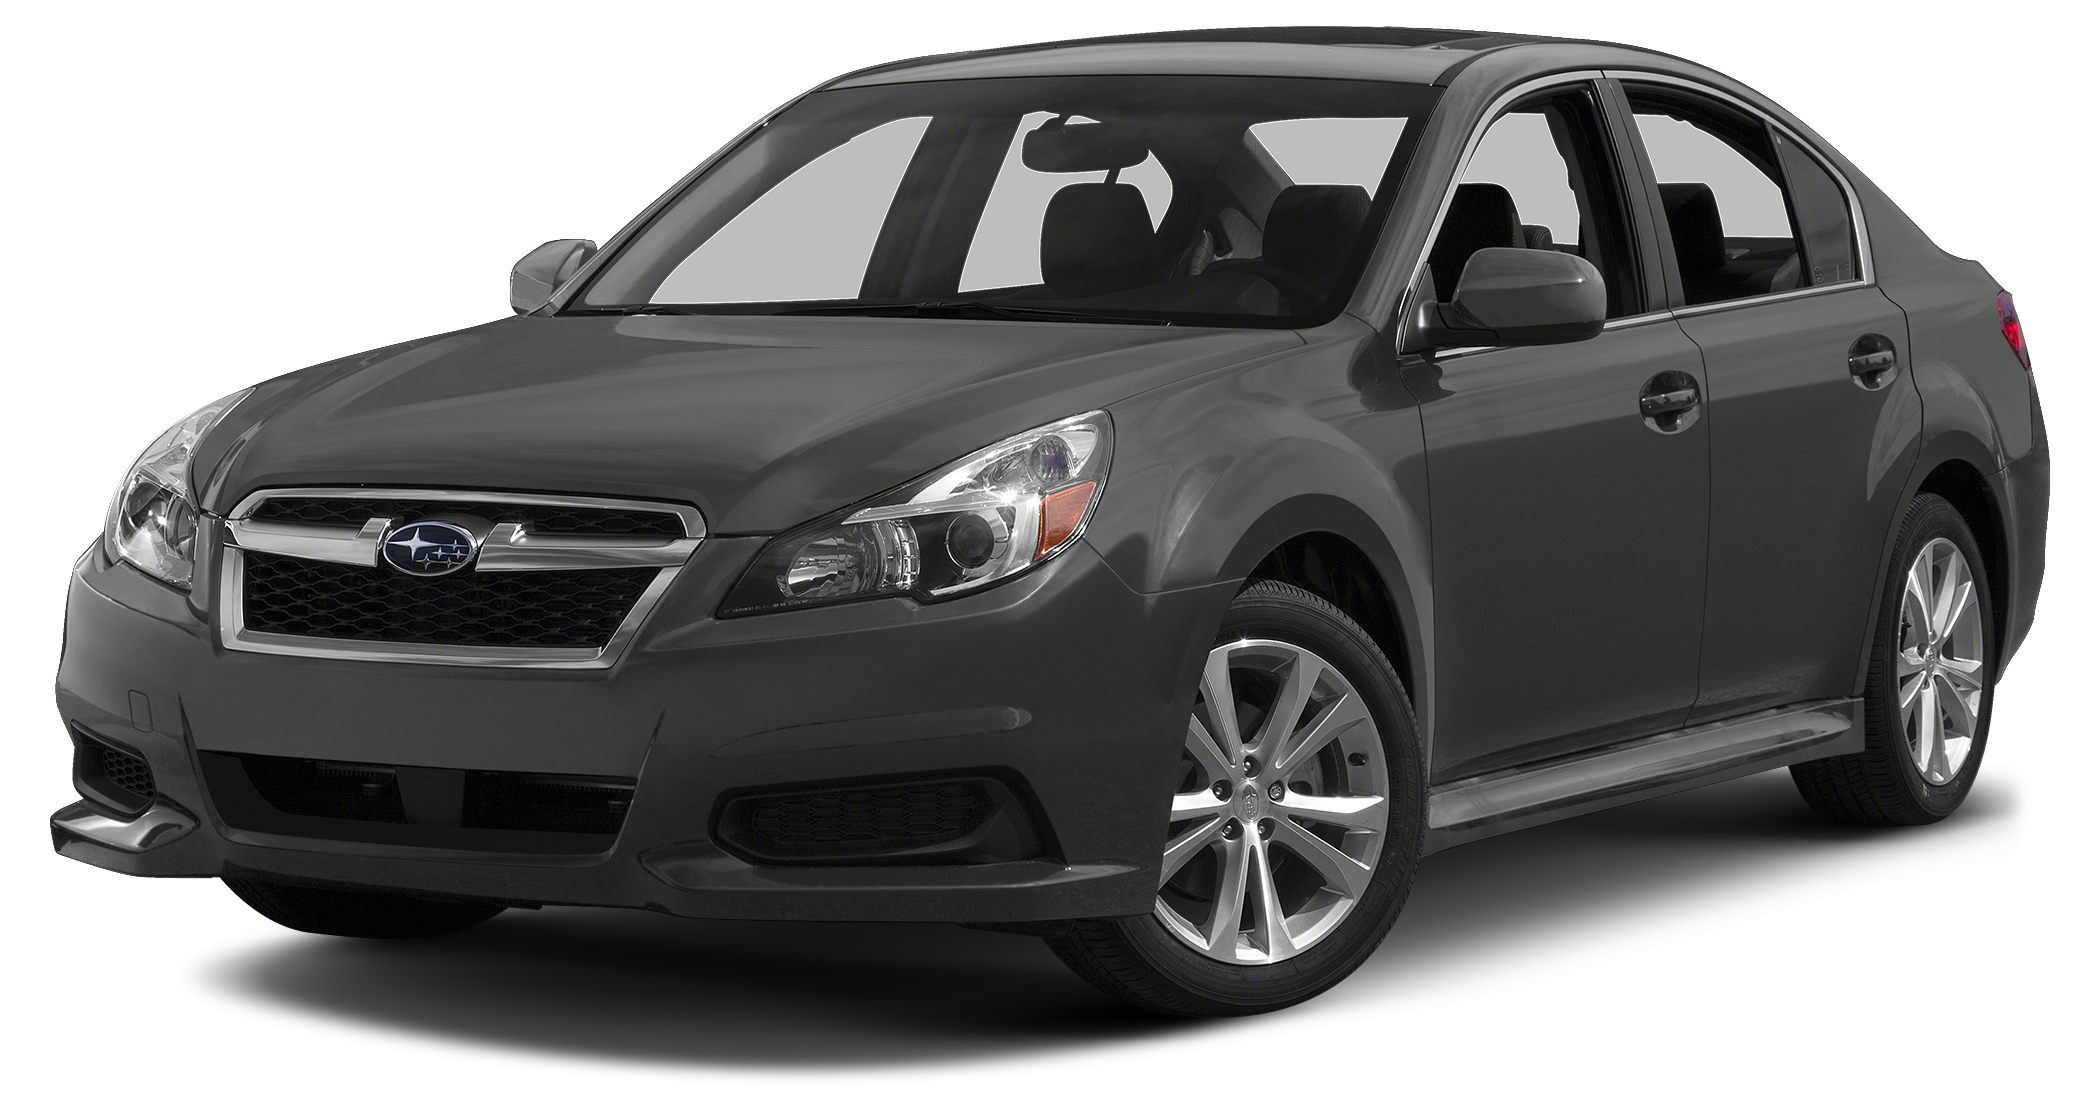 2014 Subaru Legacy 25i OUR PRICESYoure probably wondering why our prices are so much lower than